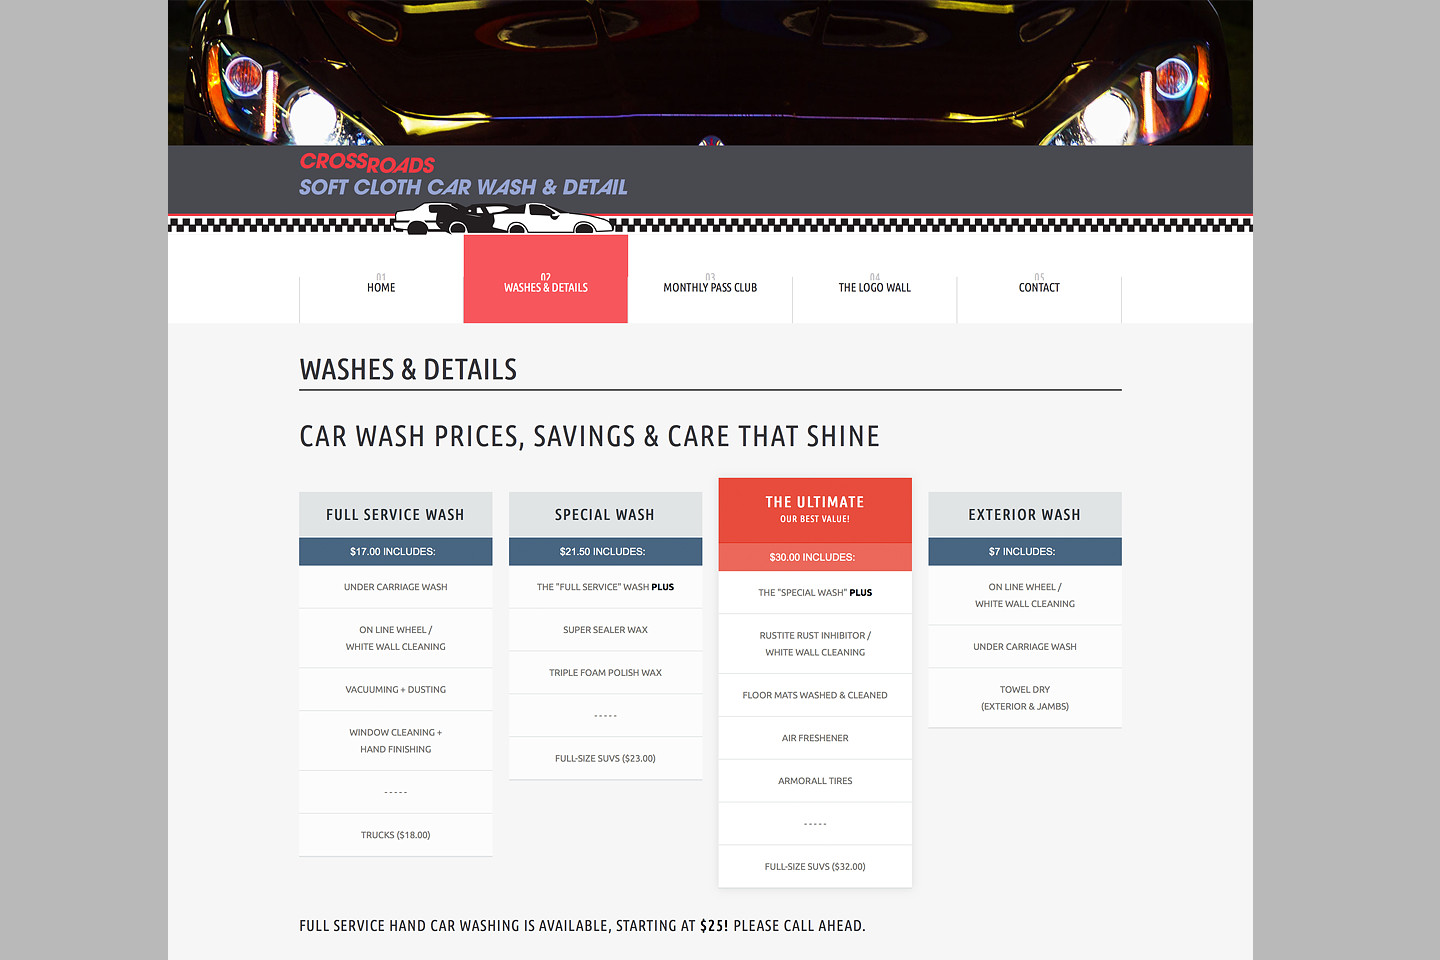 crossroads car wash responsive web design pricing tables by 4d inc